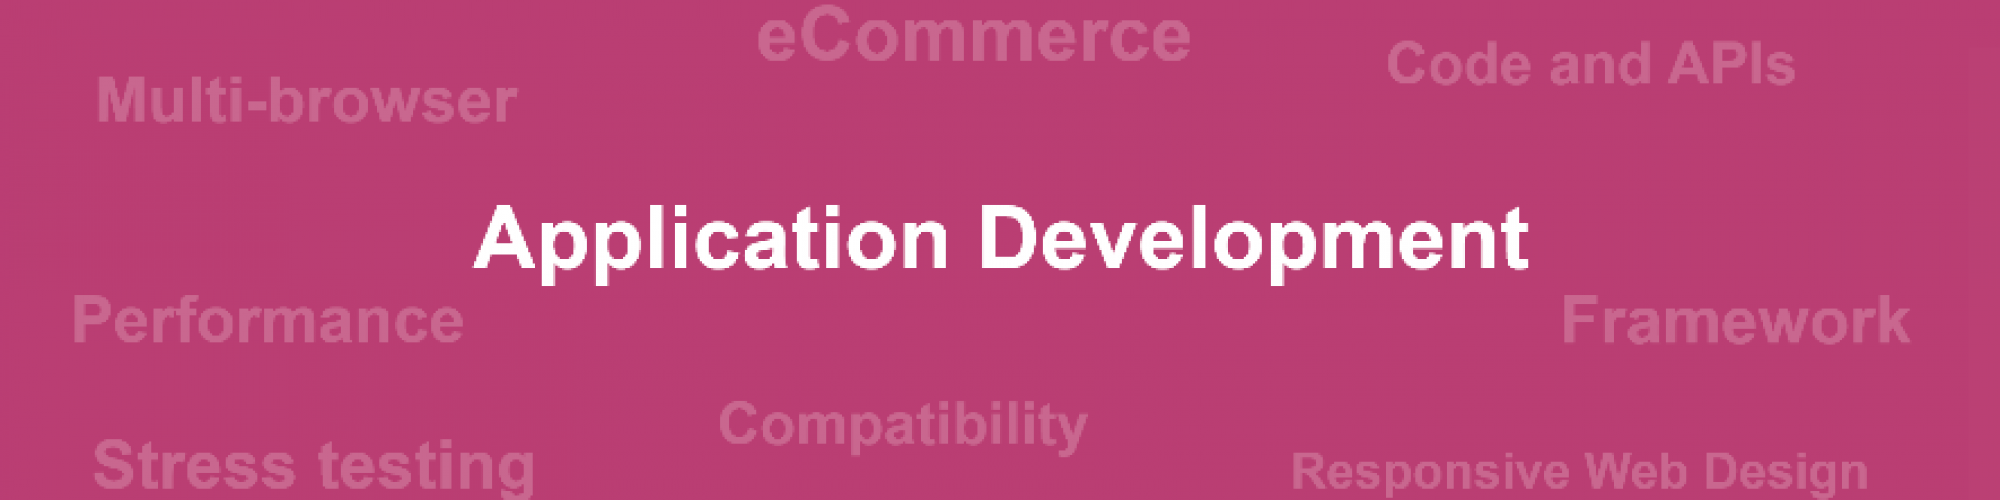 Application Development Image